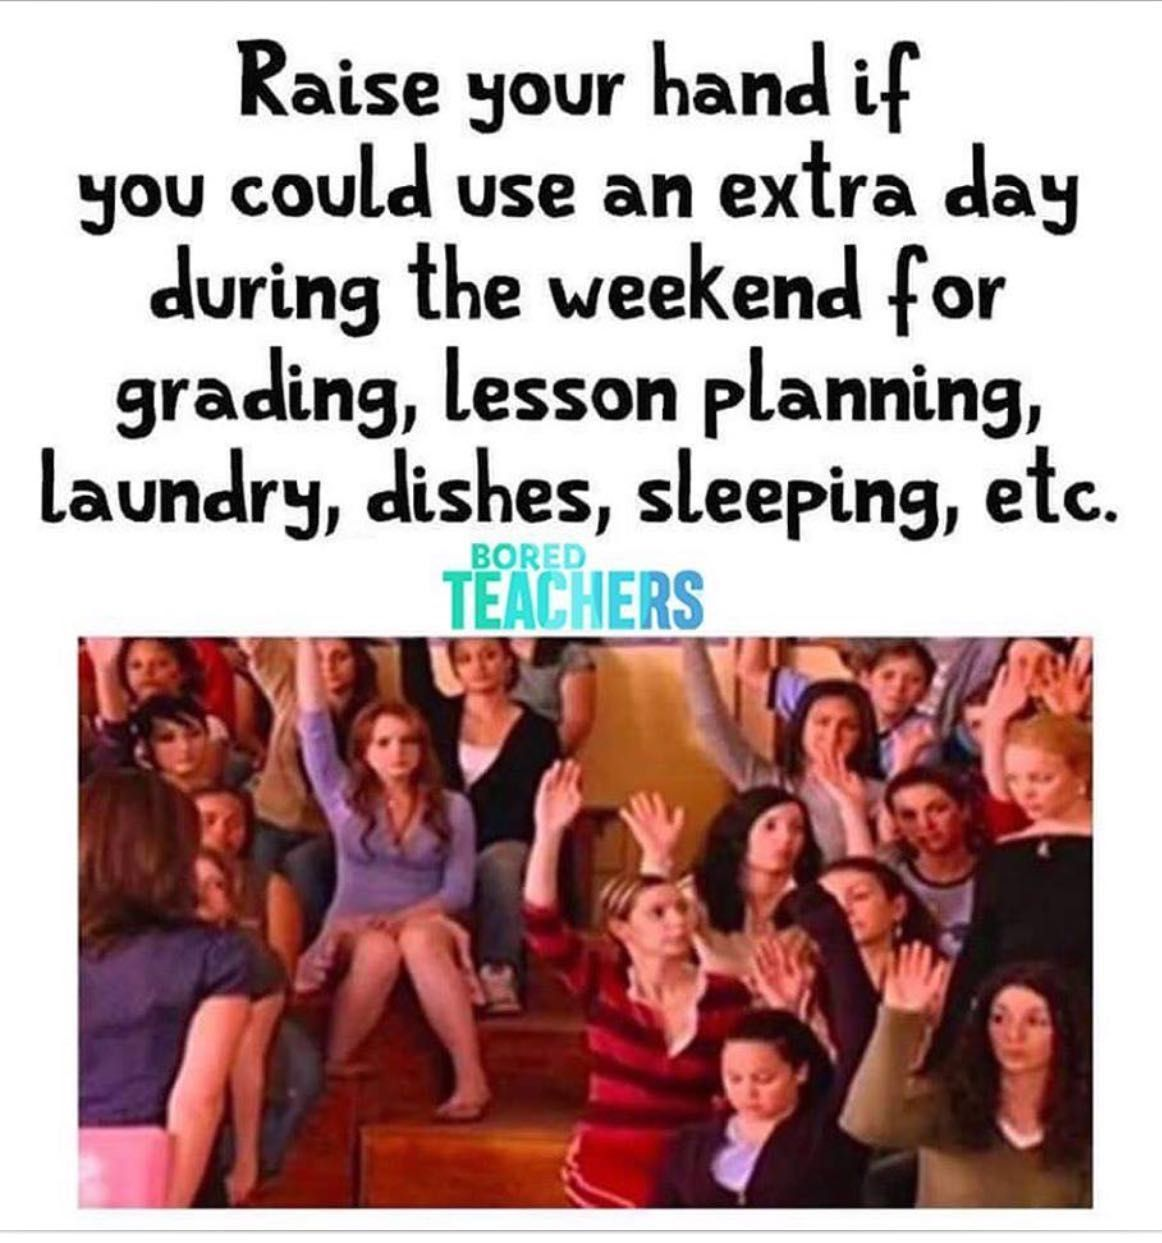 Raise Your Hand If You Could Use An Extra Day During The Weekend For Grading Lesson Planning Dishes Sleepi Teacher Quotes Funny Bored Teachers Teacher Memes